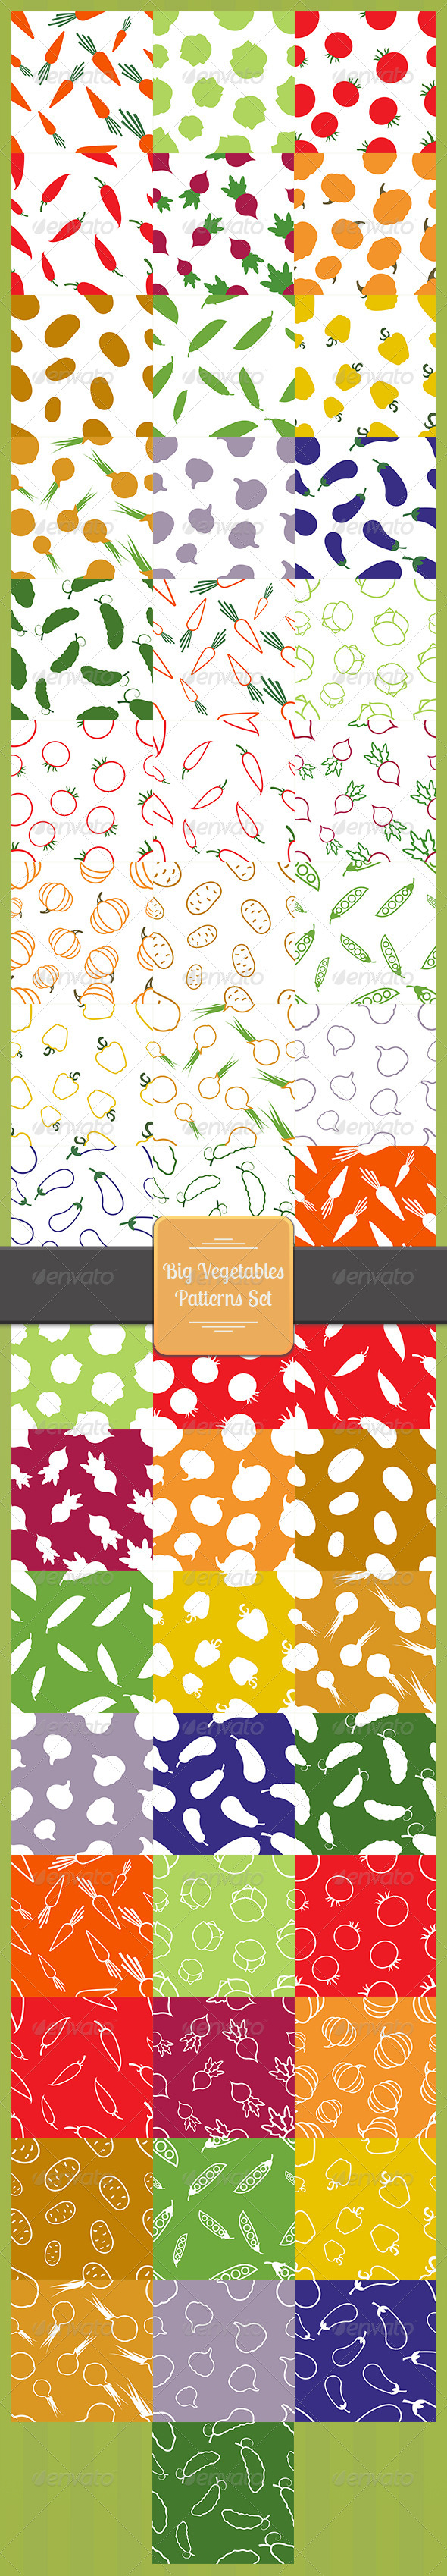 GraphicRiver Big Vegetables Patterns Set 8337592